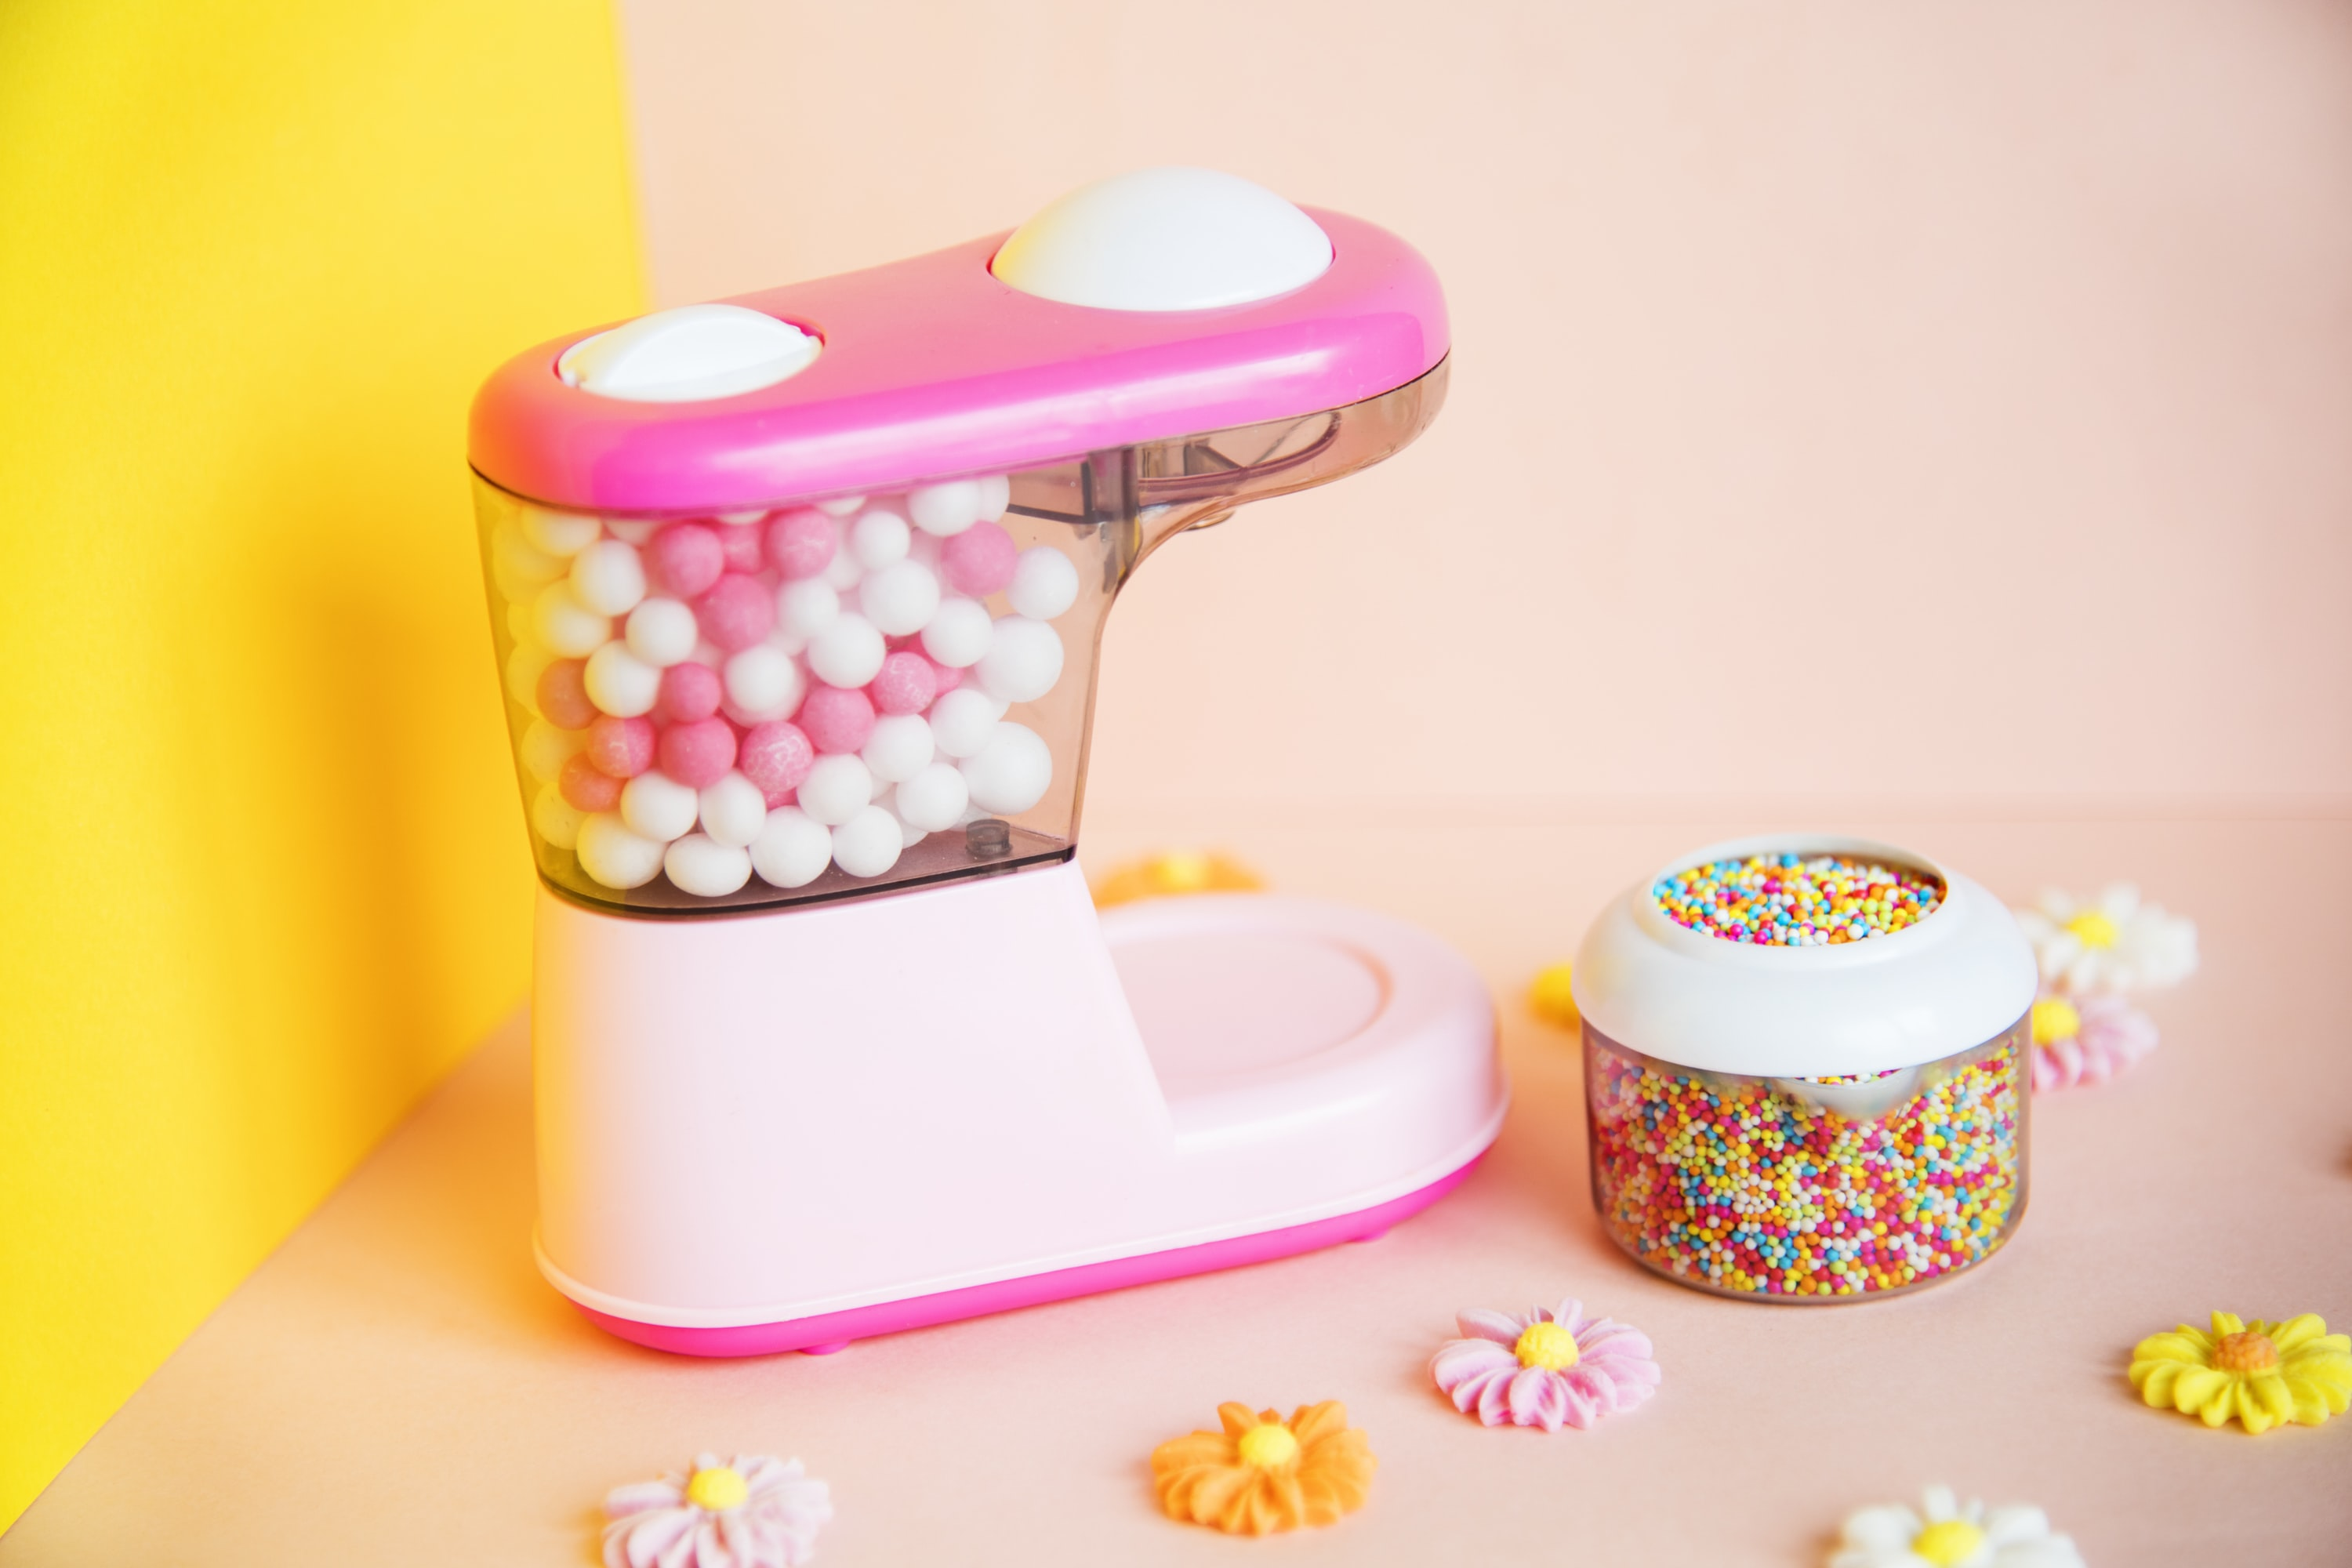 photography of candy dispenser fully filled with candies